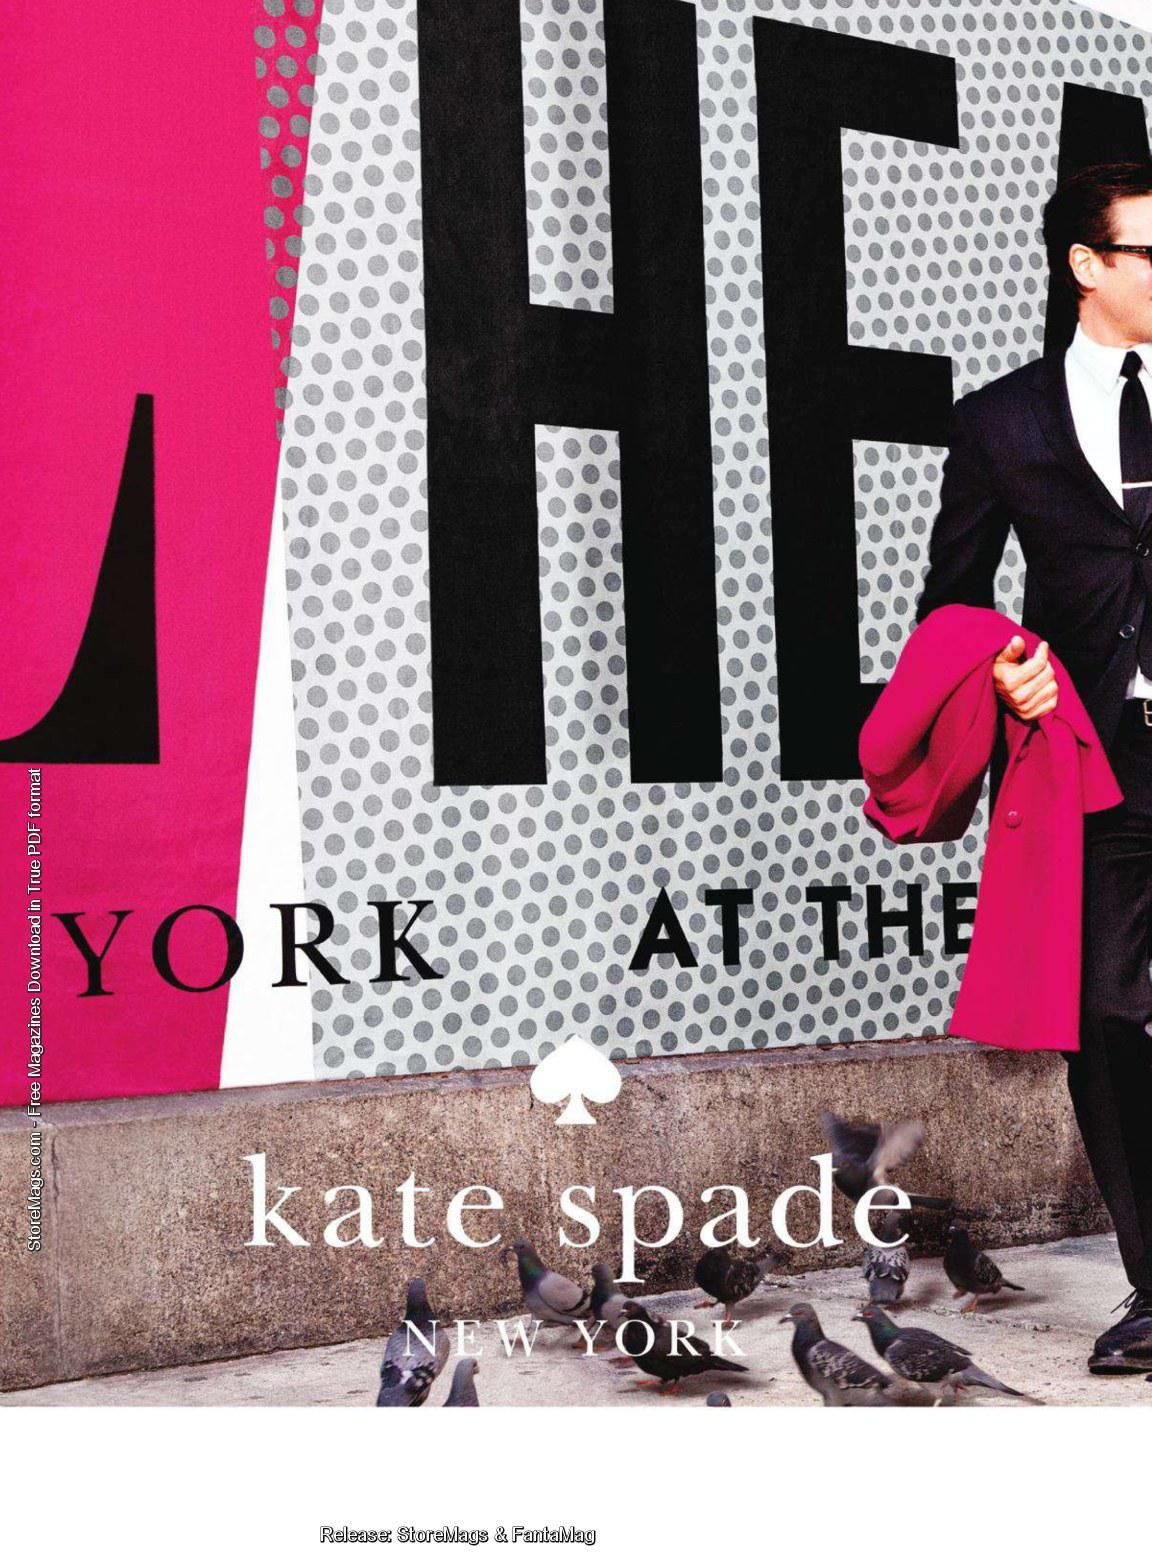 New Kate Spade Fall Winter 2011 Ad Campaign Preview | Art8amby's Blog SR52